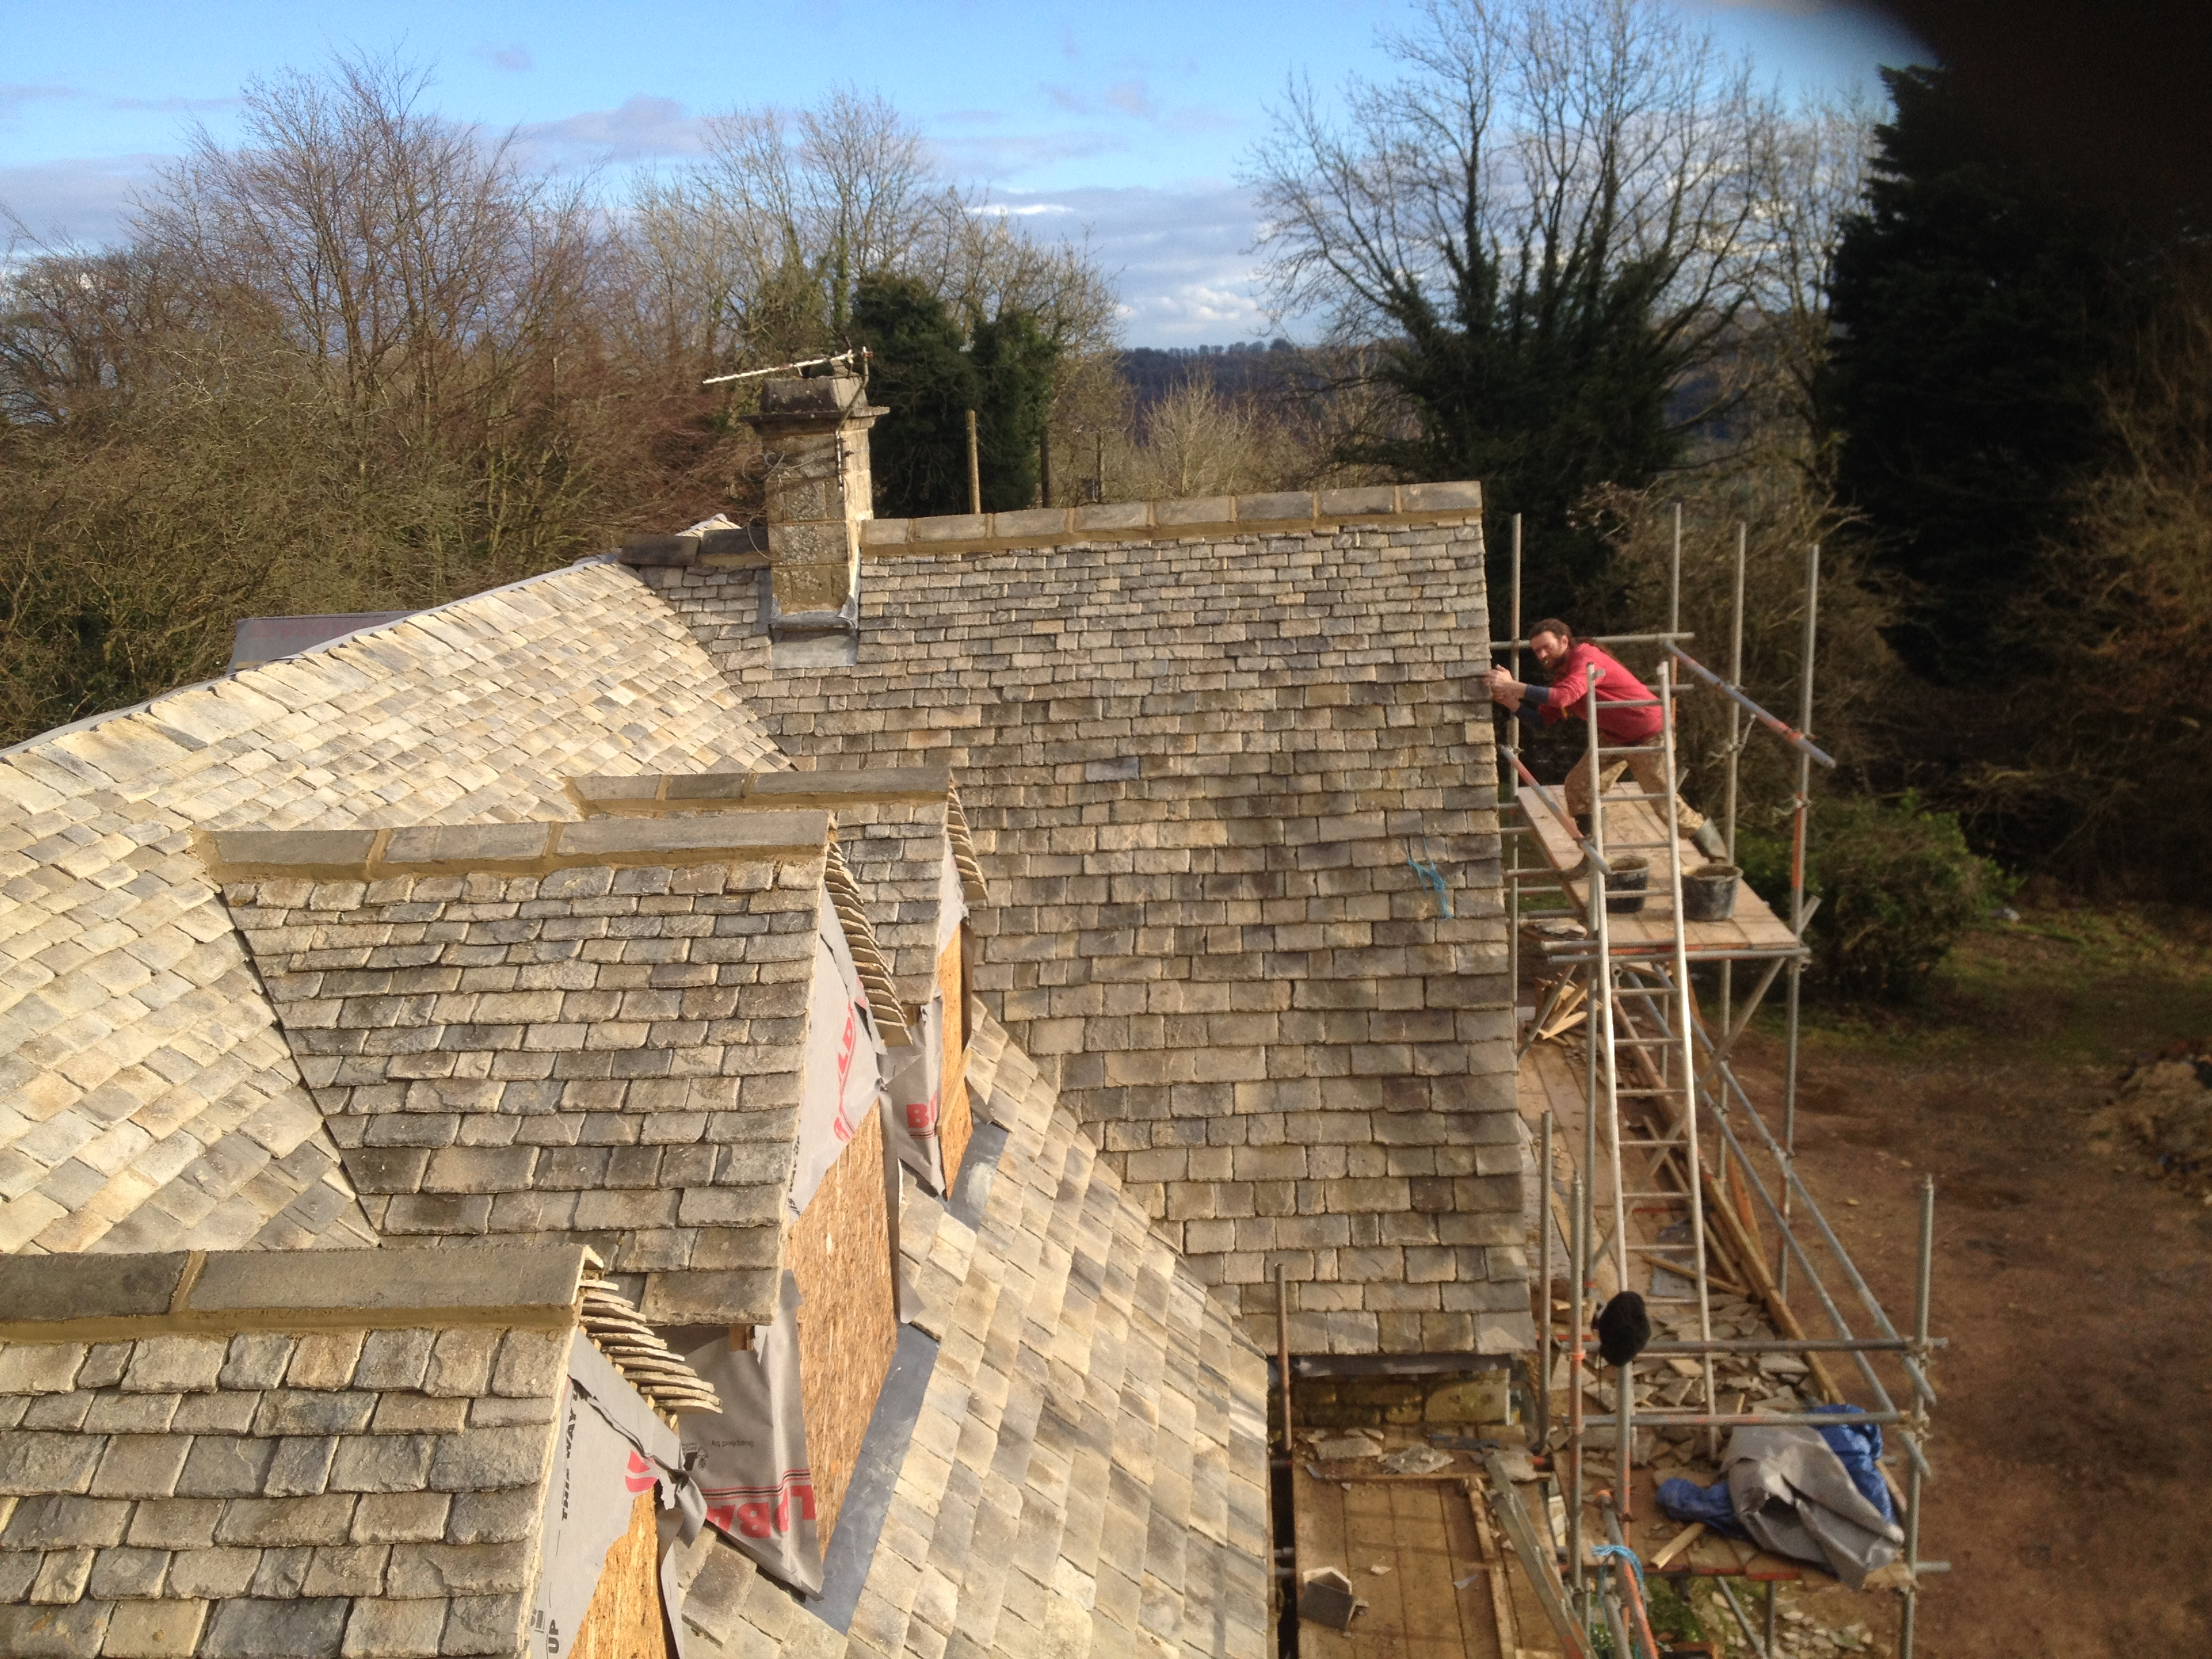 cotswold stone tiles in Uley